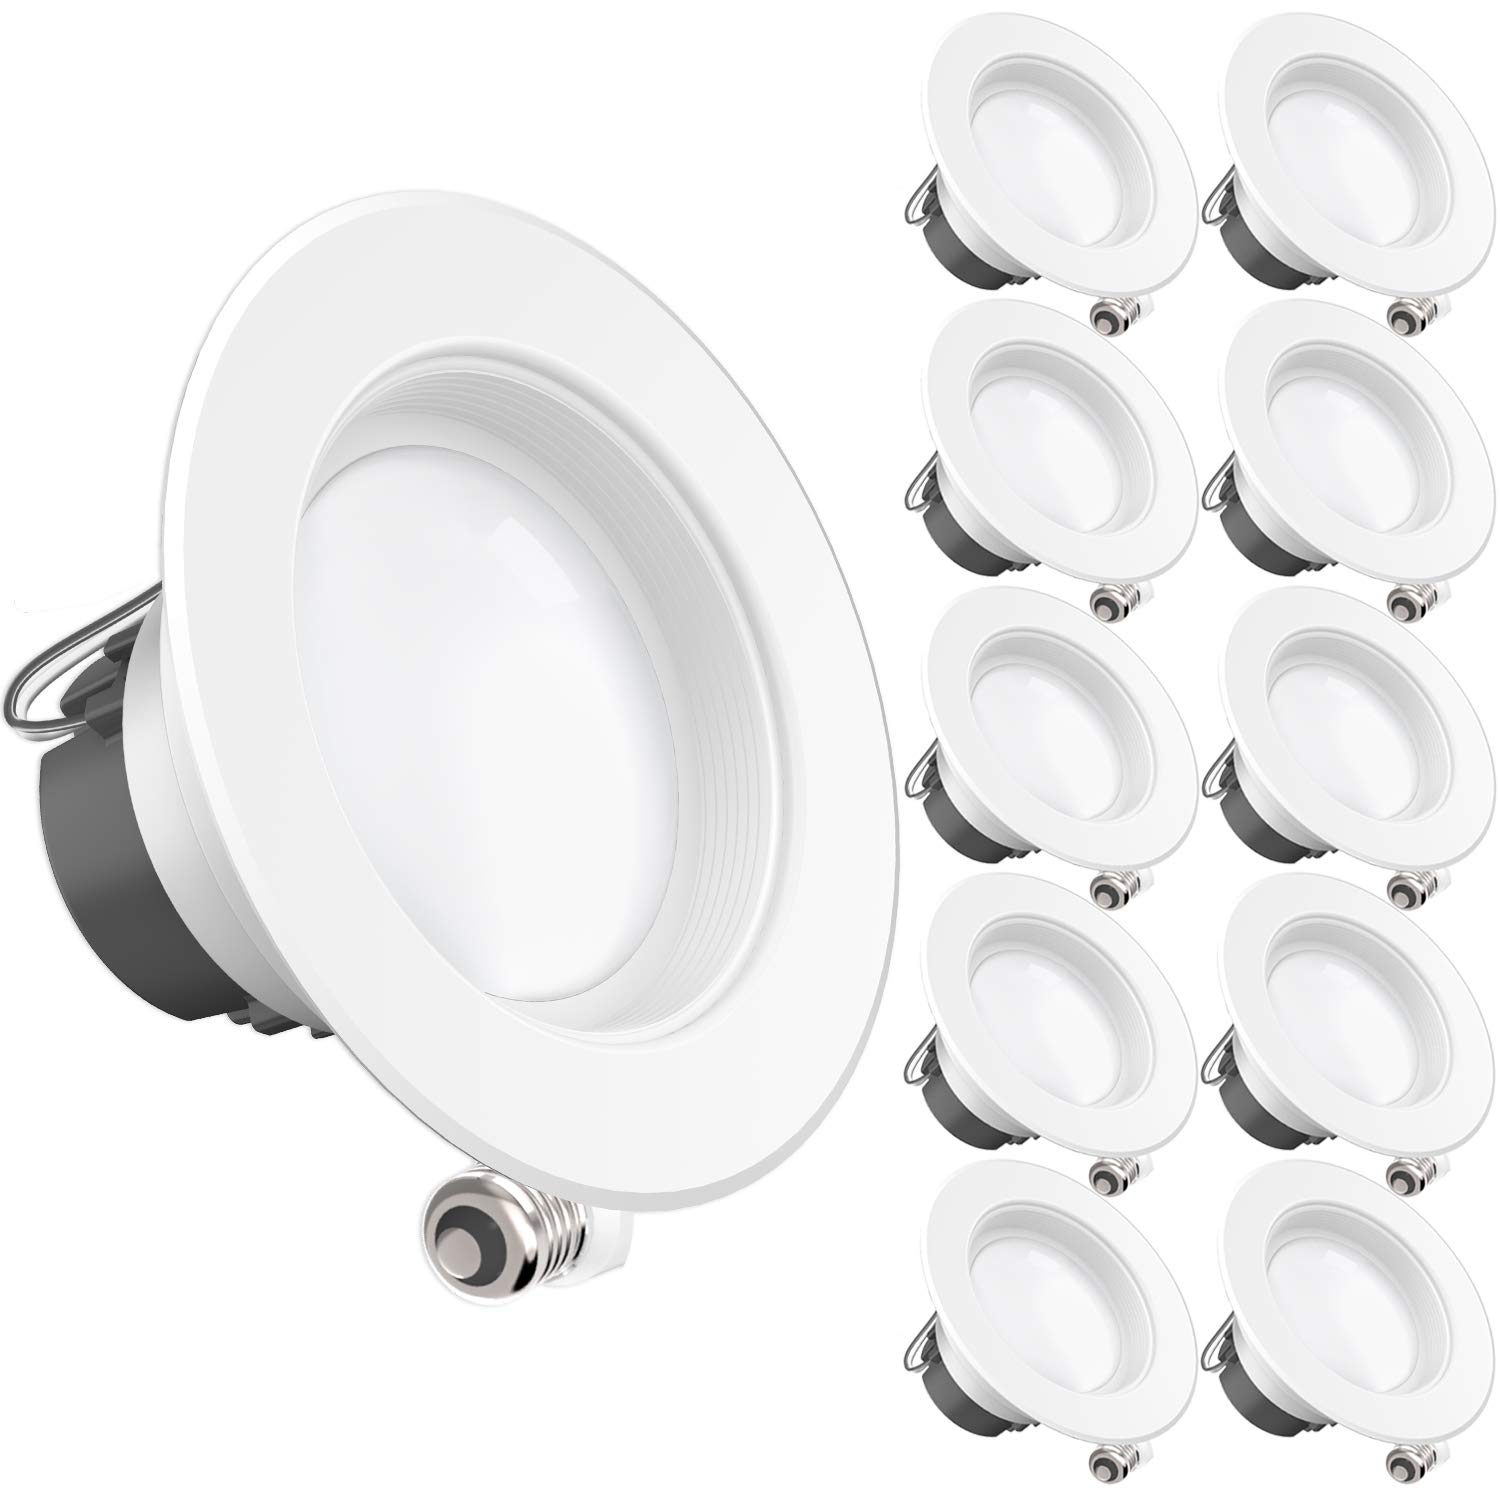 Sunco Lighting 10 Pack 4 Inch LED Recessed Downlight, Baffle Trim, Dimmable, 11W=40W, 3000K Warm White, 660 LM, Damp Rated, Simple Retrofit Installation - UL + Energy Star by Sunco Lighting (Image #1)